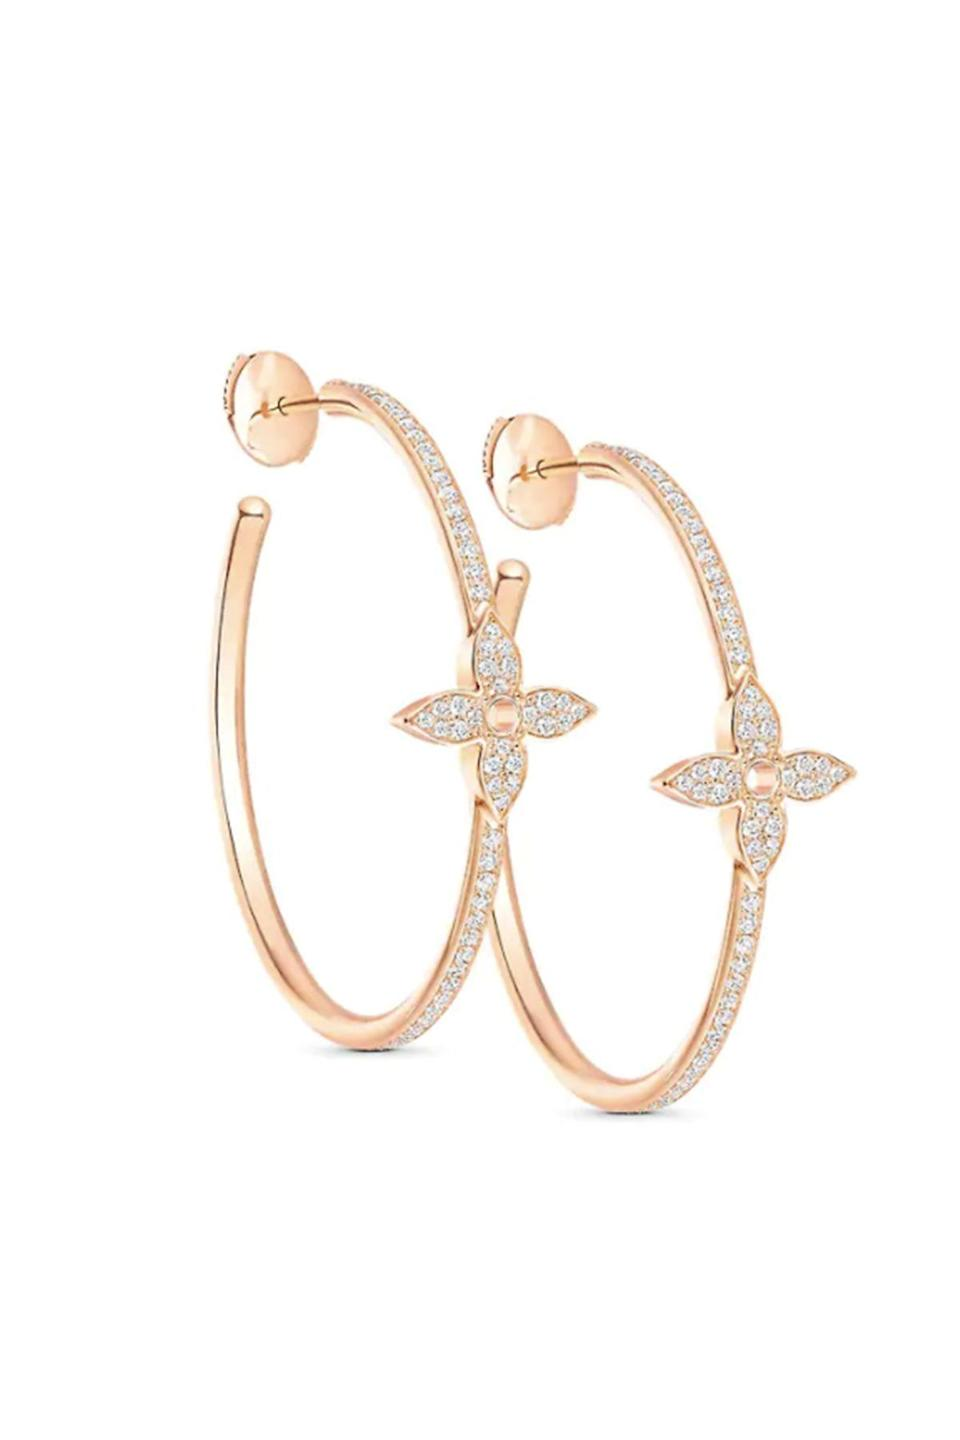 """<p><strong>Louis Vuitton</strong></p><p><strong>$9450.00</strong></p><p><a href=""""https://us.louisvuitton.com/eng-us/products/idylle-blossom-hoops-pink-gold-and-diamonds-nvprod2070007v"""" rel=""""nofollow noopener"""" target=""""_blank"""" data-ylk=""""slk:Shop Now"""" class=""""link rapid-noclick-resp"""">Shop Now</a></p><p>You can wear this refined version of the iconic Louis Vuitton monogram with virtually any look. </p>"""